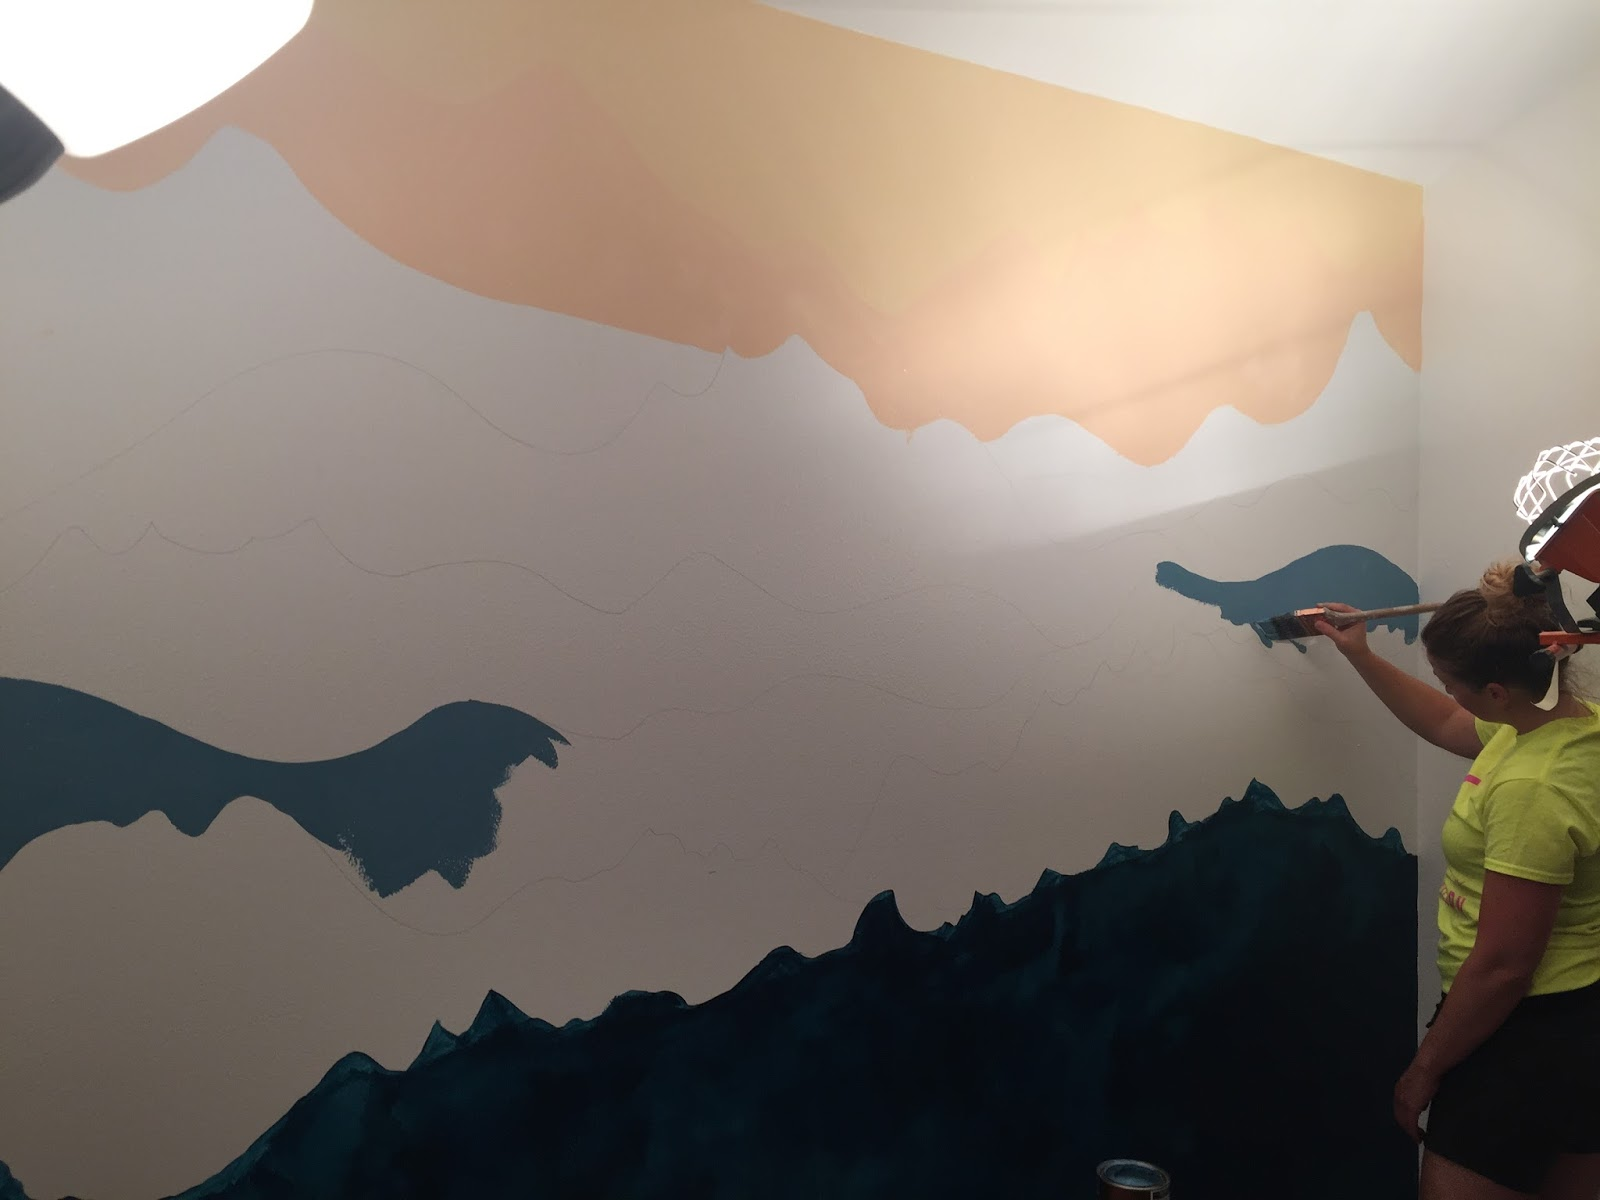 How To Paint Mountains On Wall